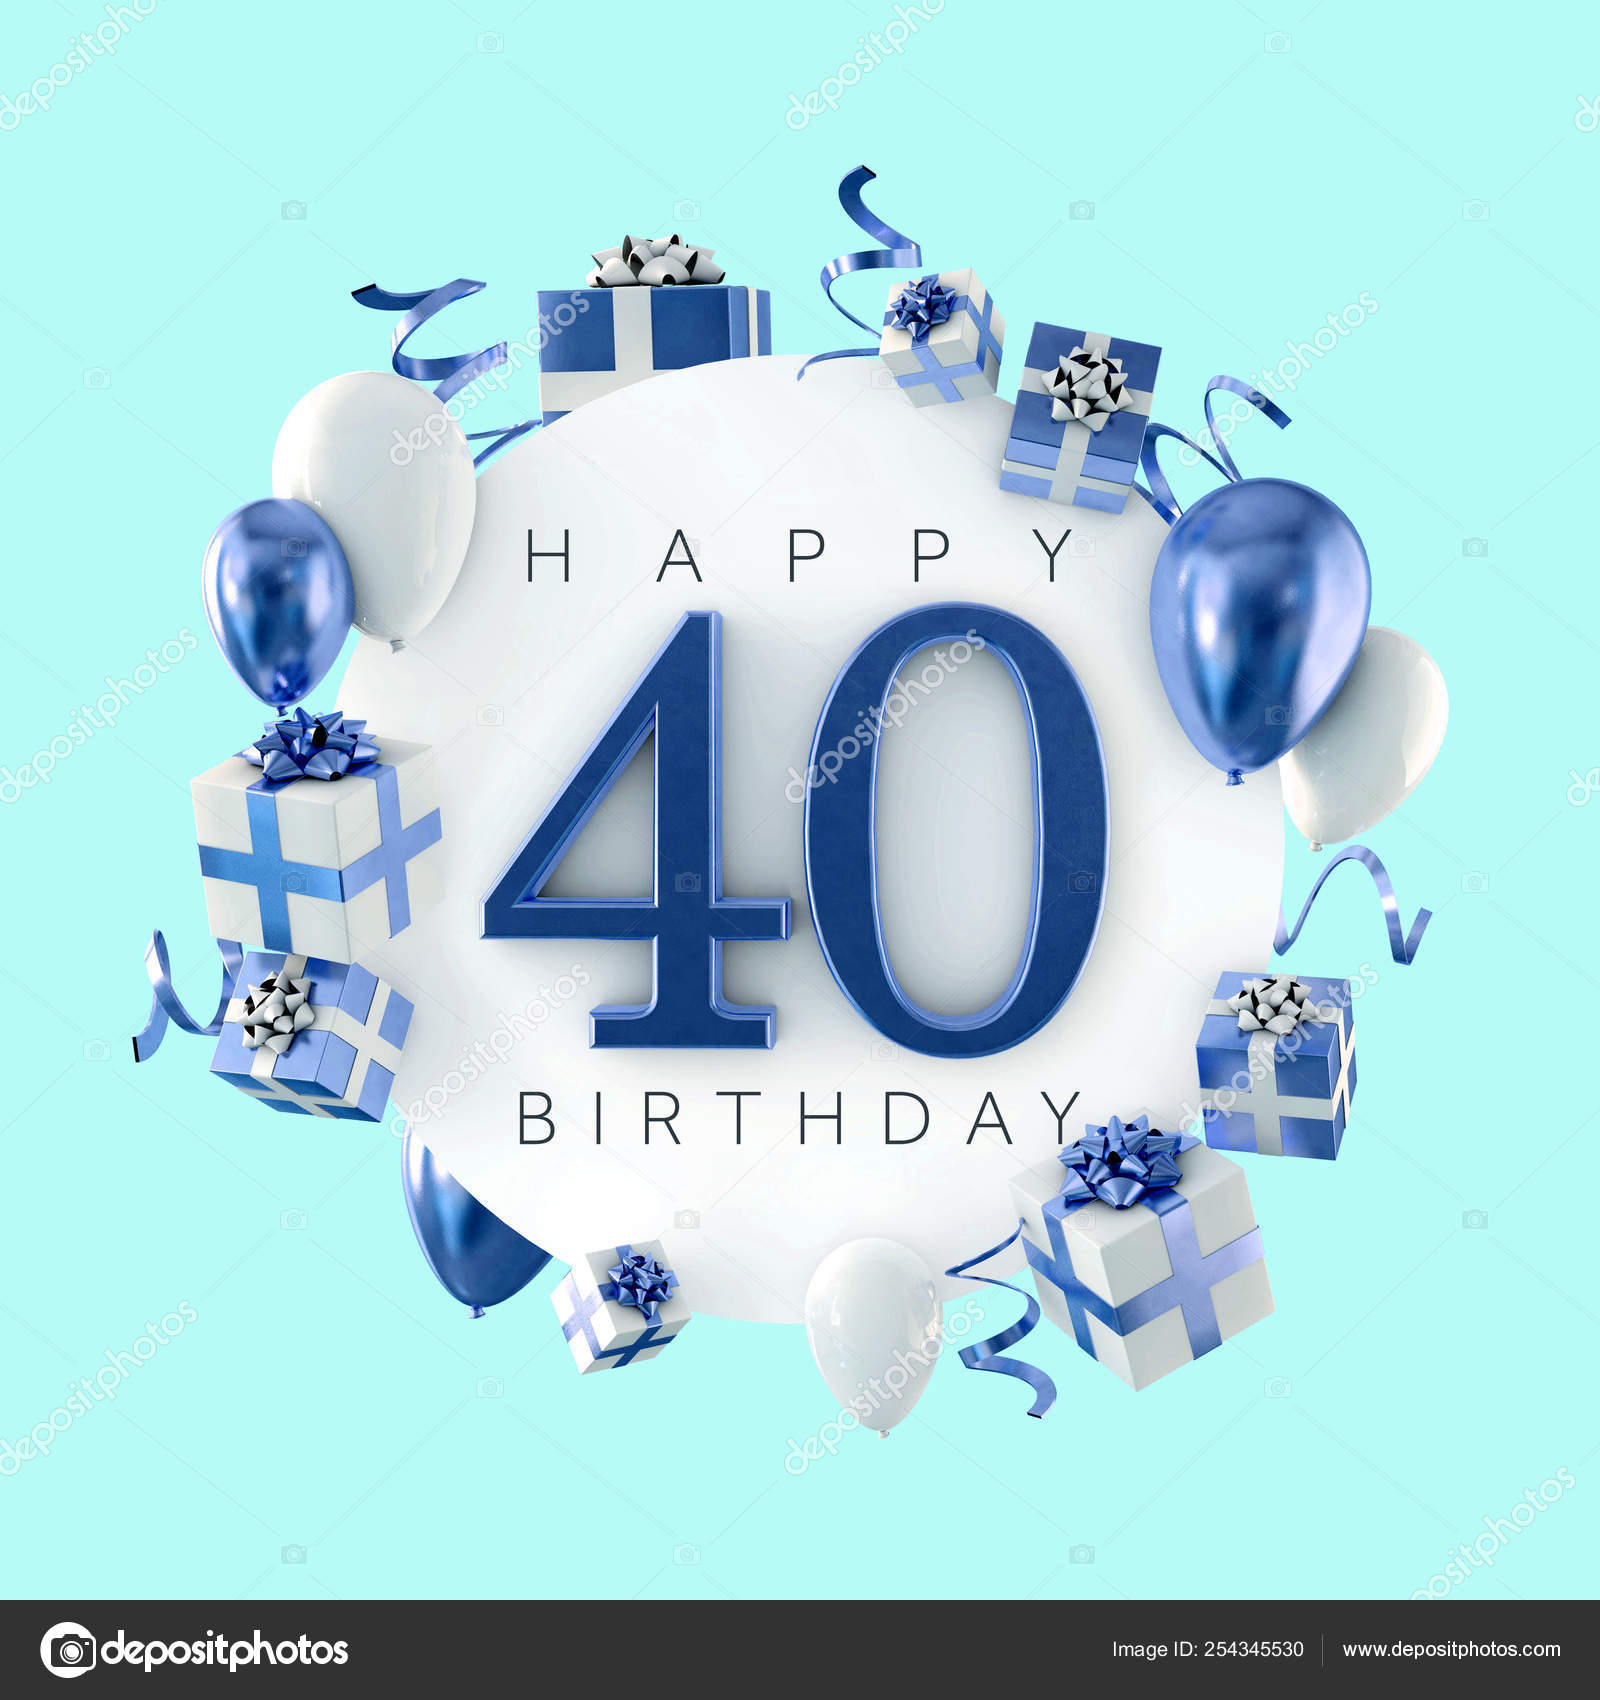 Happy 40th Birthday Party Composition With Balloons And Presents 3d Render Stock Photo Image By C Inkdropcreative 254345530